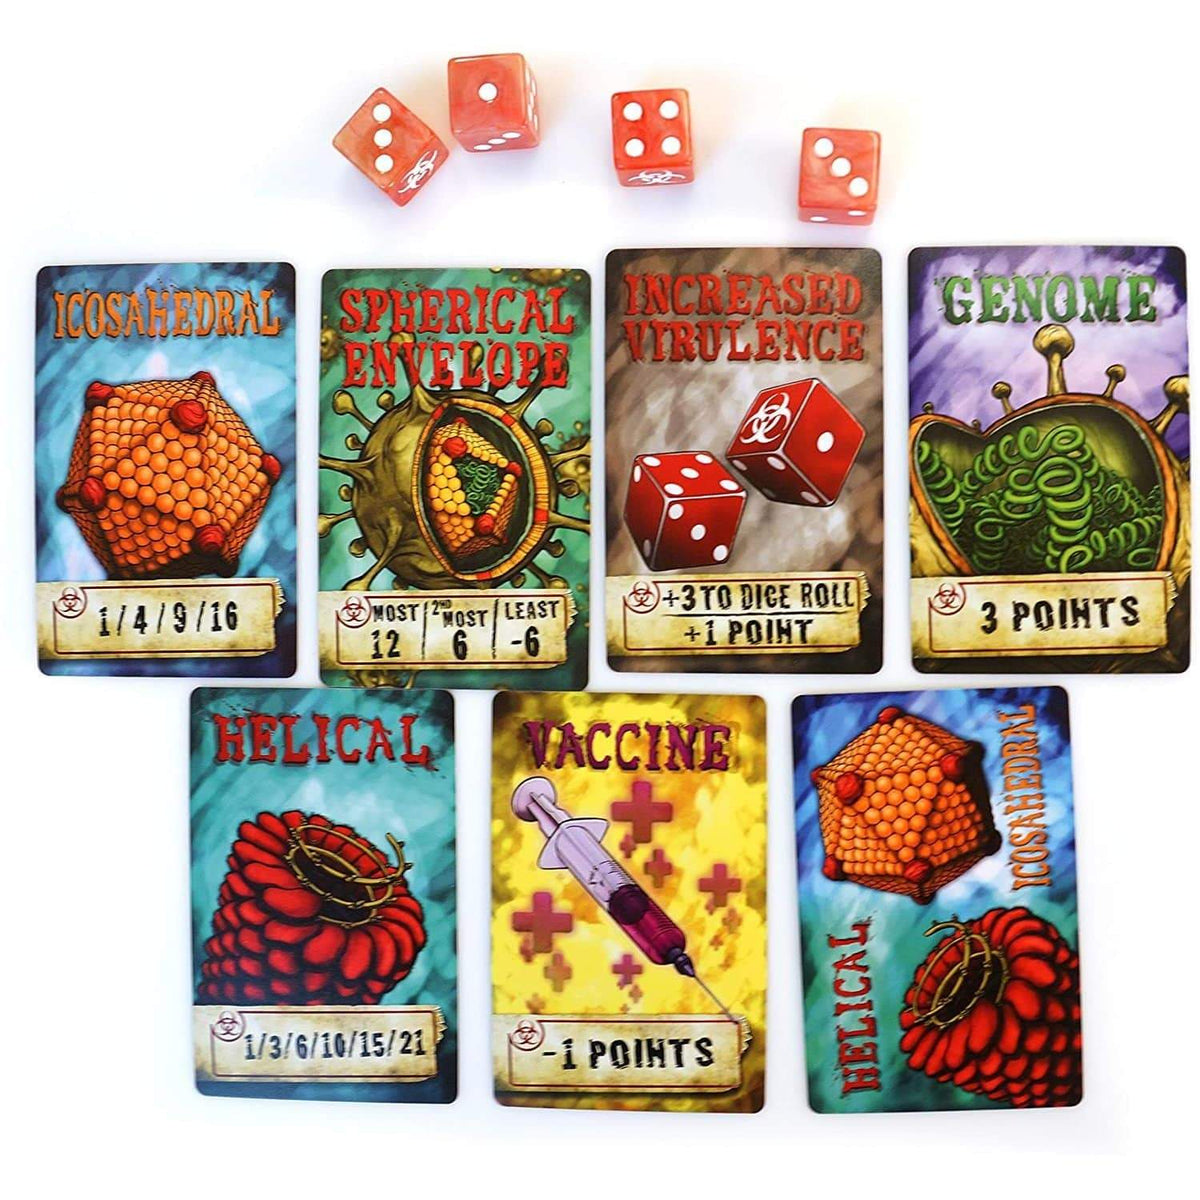 Virulence: An Infectious Card Game Genius Games Board Games